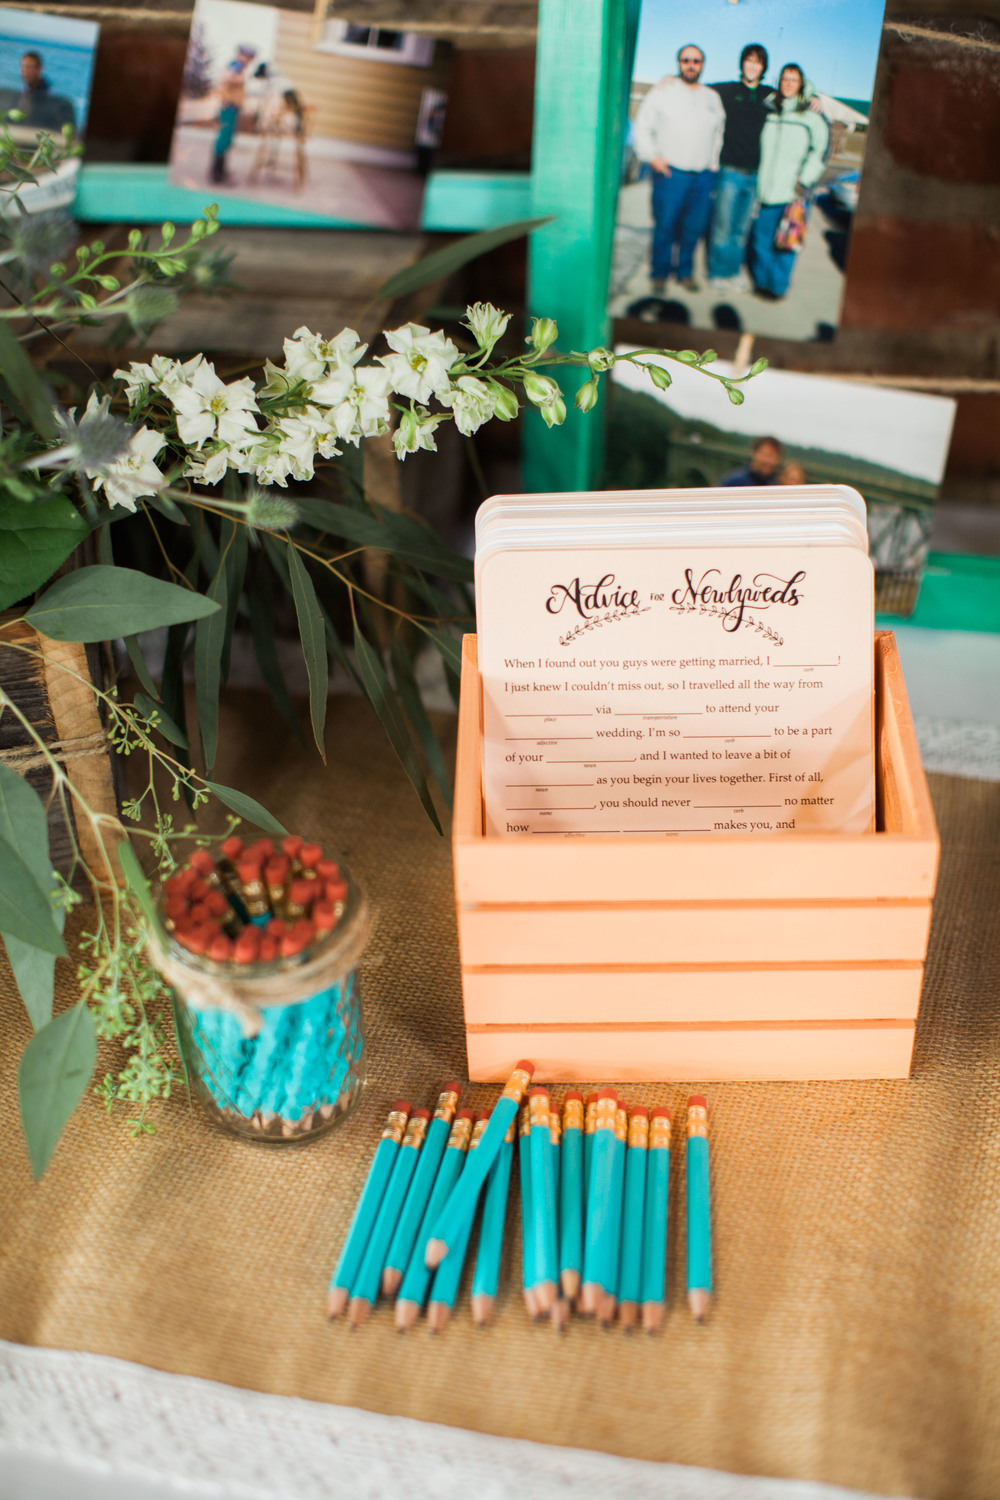 Seattle wedding photographer film photography golden garden gardens state park ocean beach sand grass wind boat house boathouse wedding reception advice for the newlywed game card